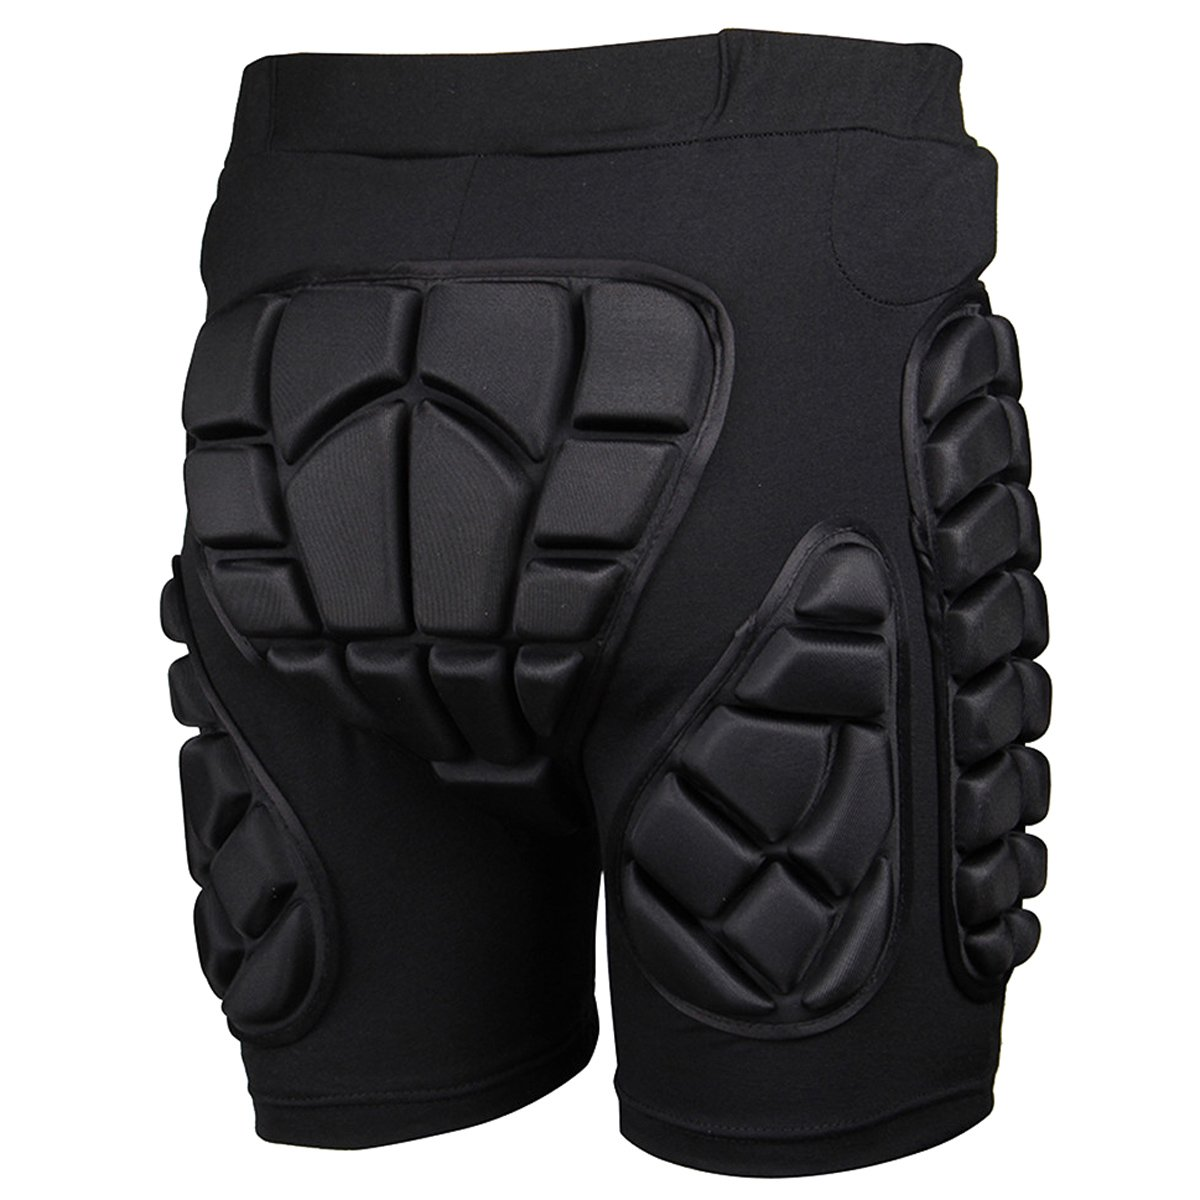 3D Protective Pads Compressin Shorts Hips Butt Protection for Ski Skiing Skating Snowboard Cycling, Fits for Kids/Teens/Adults Egoodbest